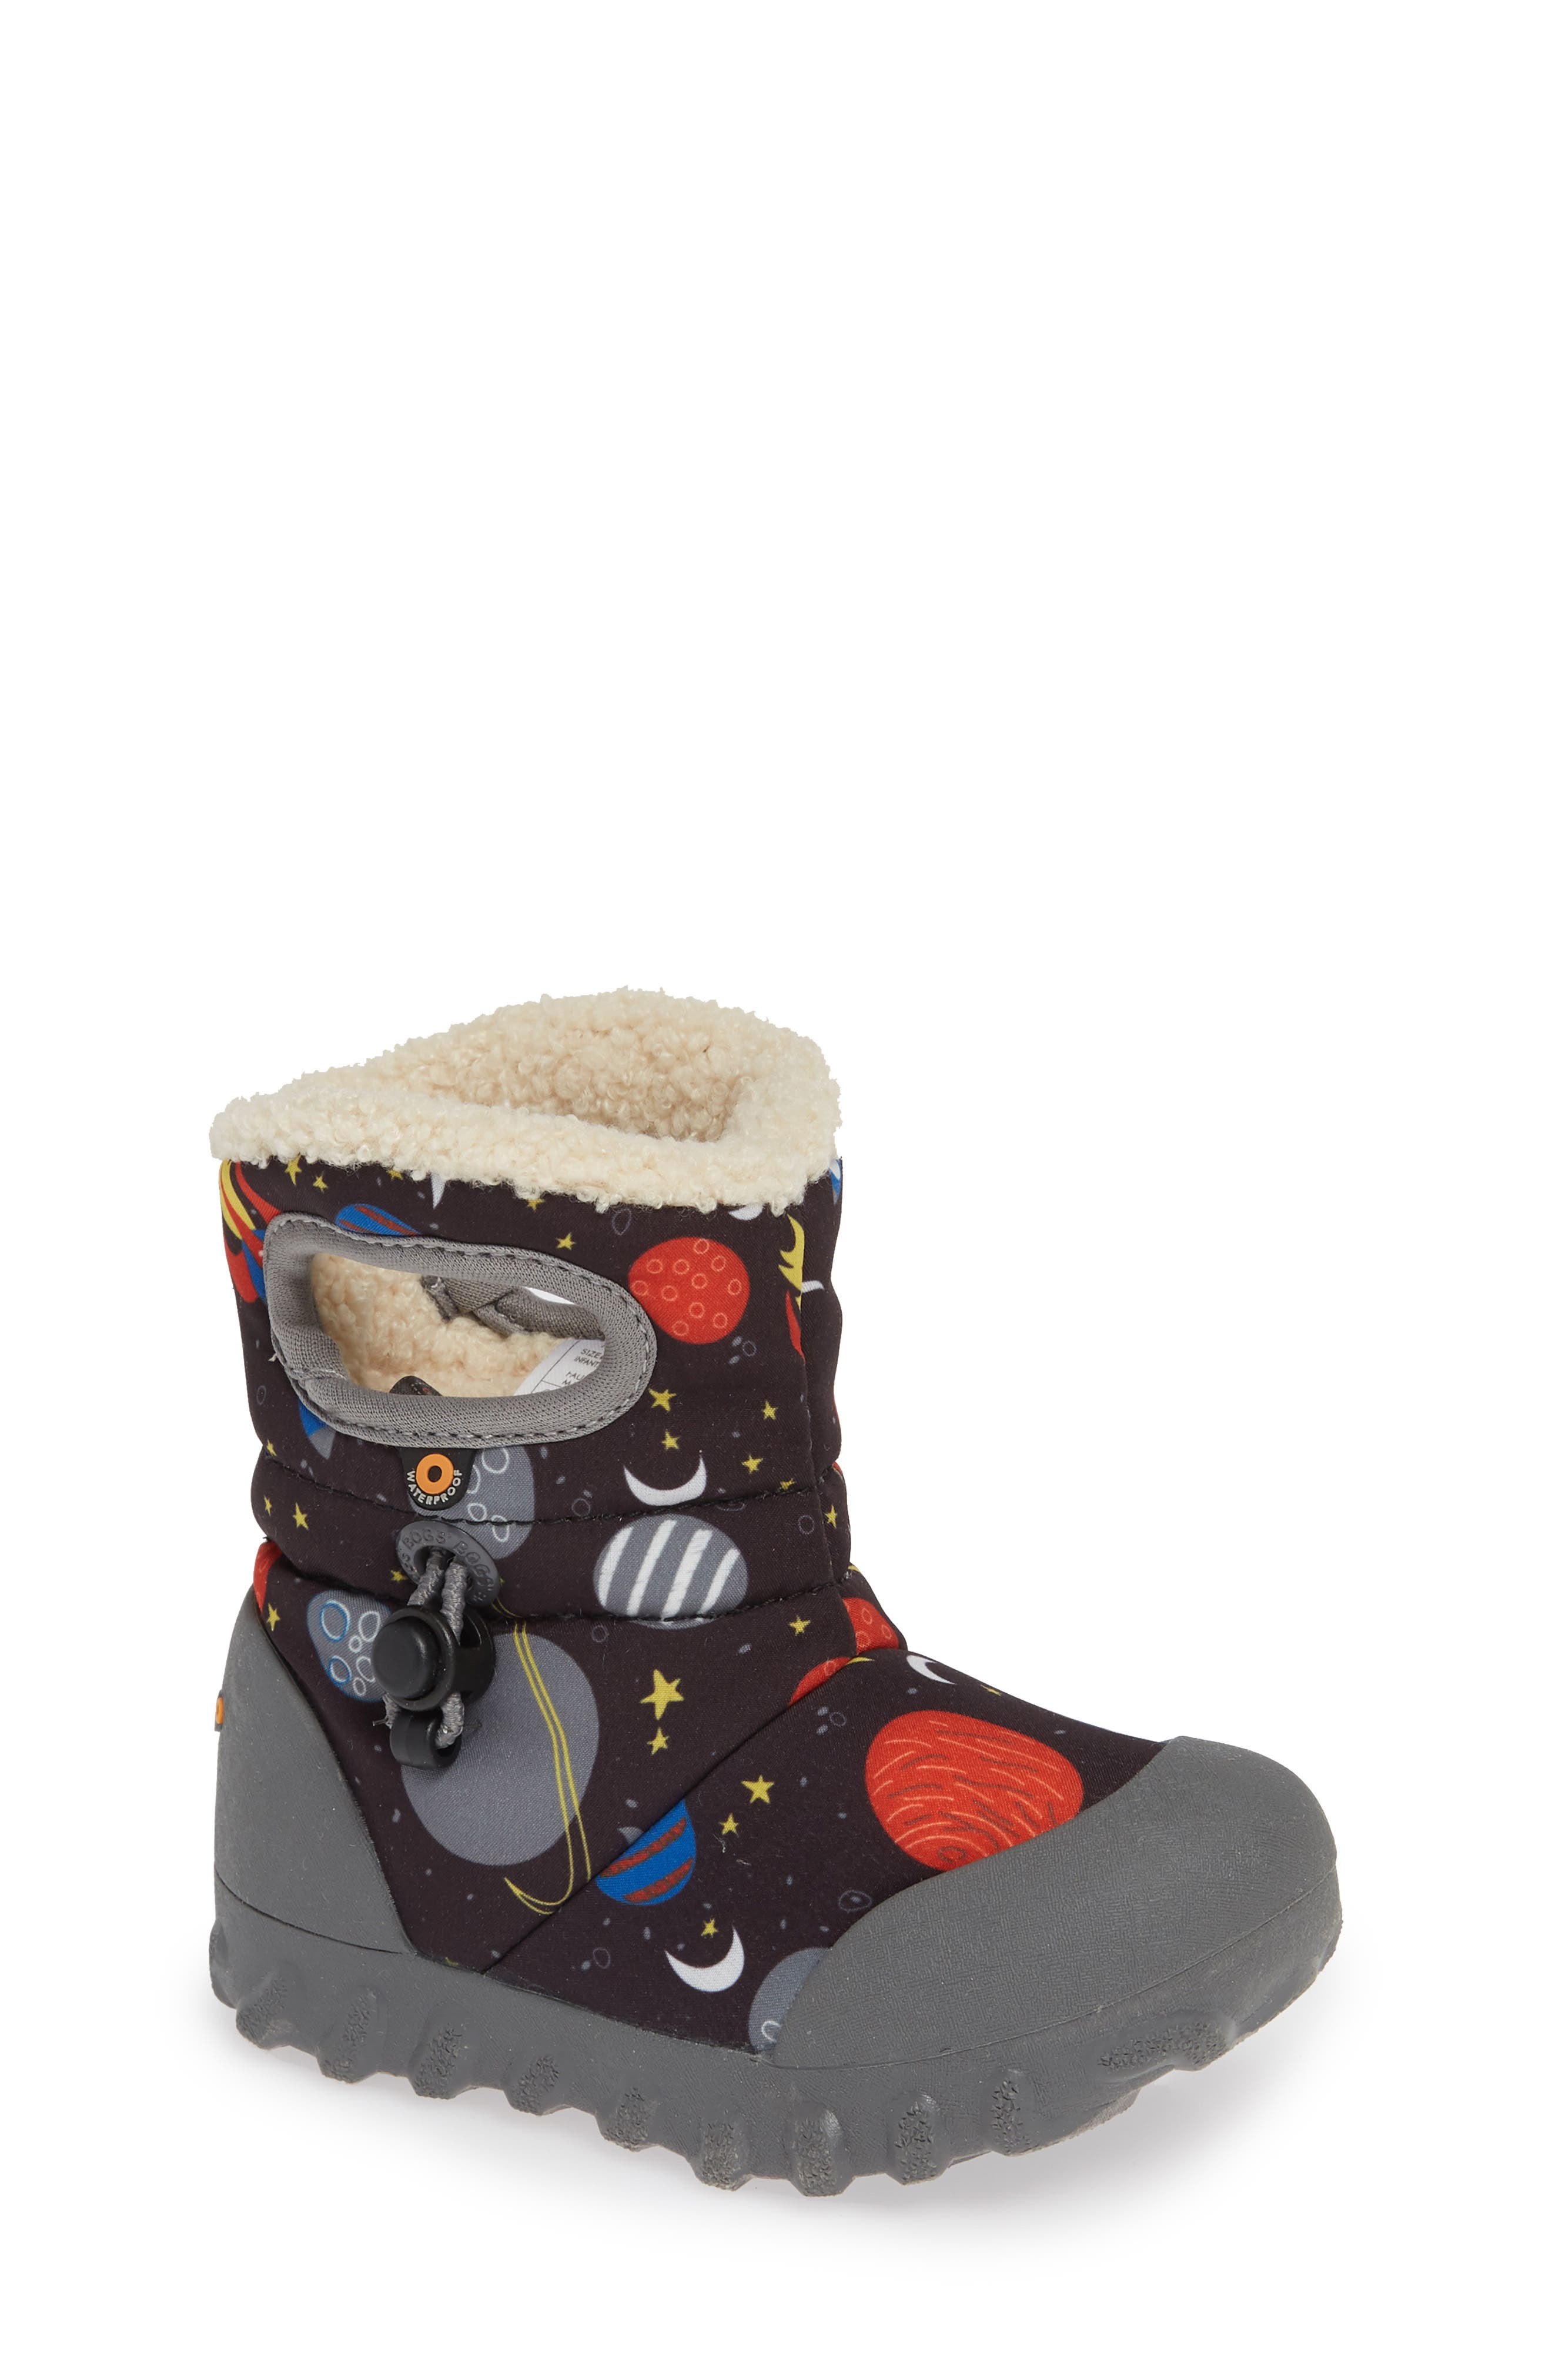 B-MOC Space Waterproof Insulated Faux Fur Boot,                         Main,                         color, 009